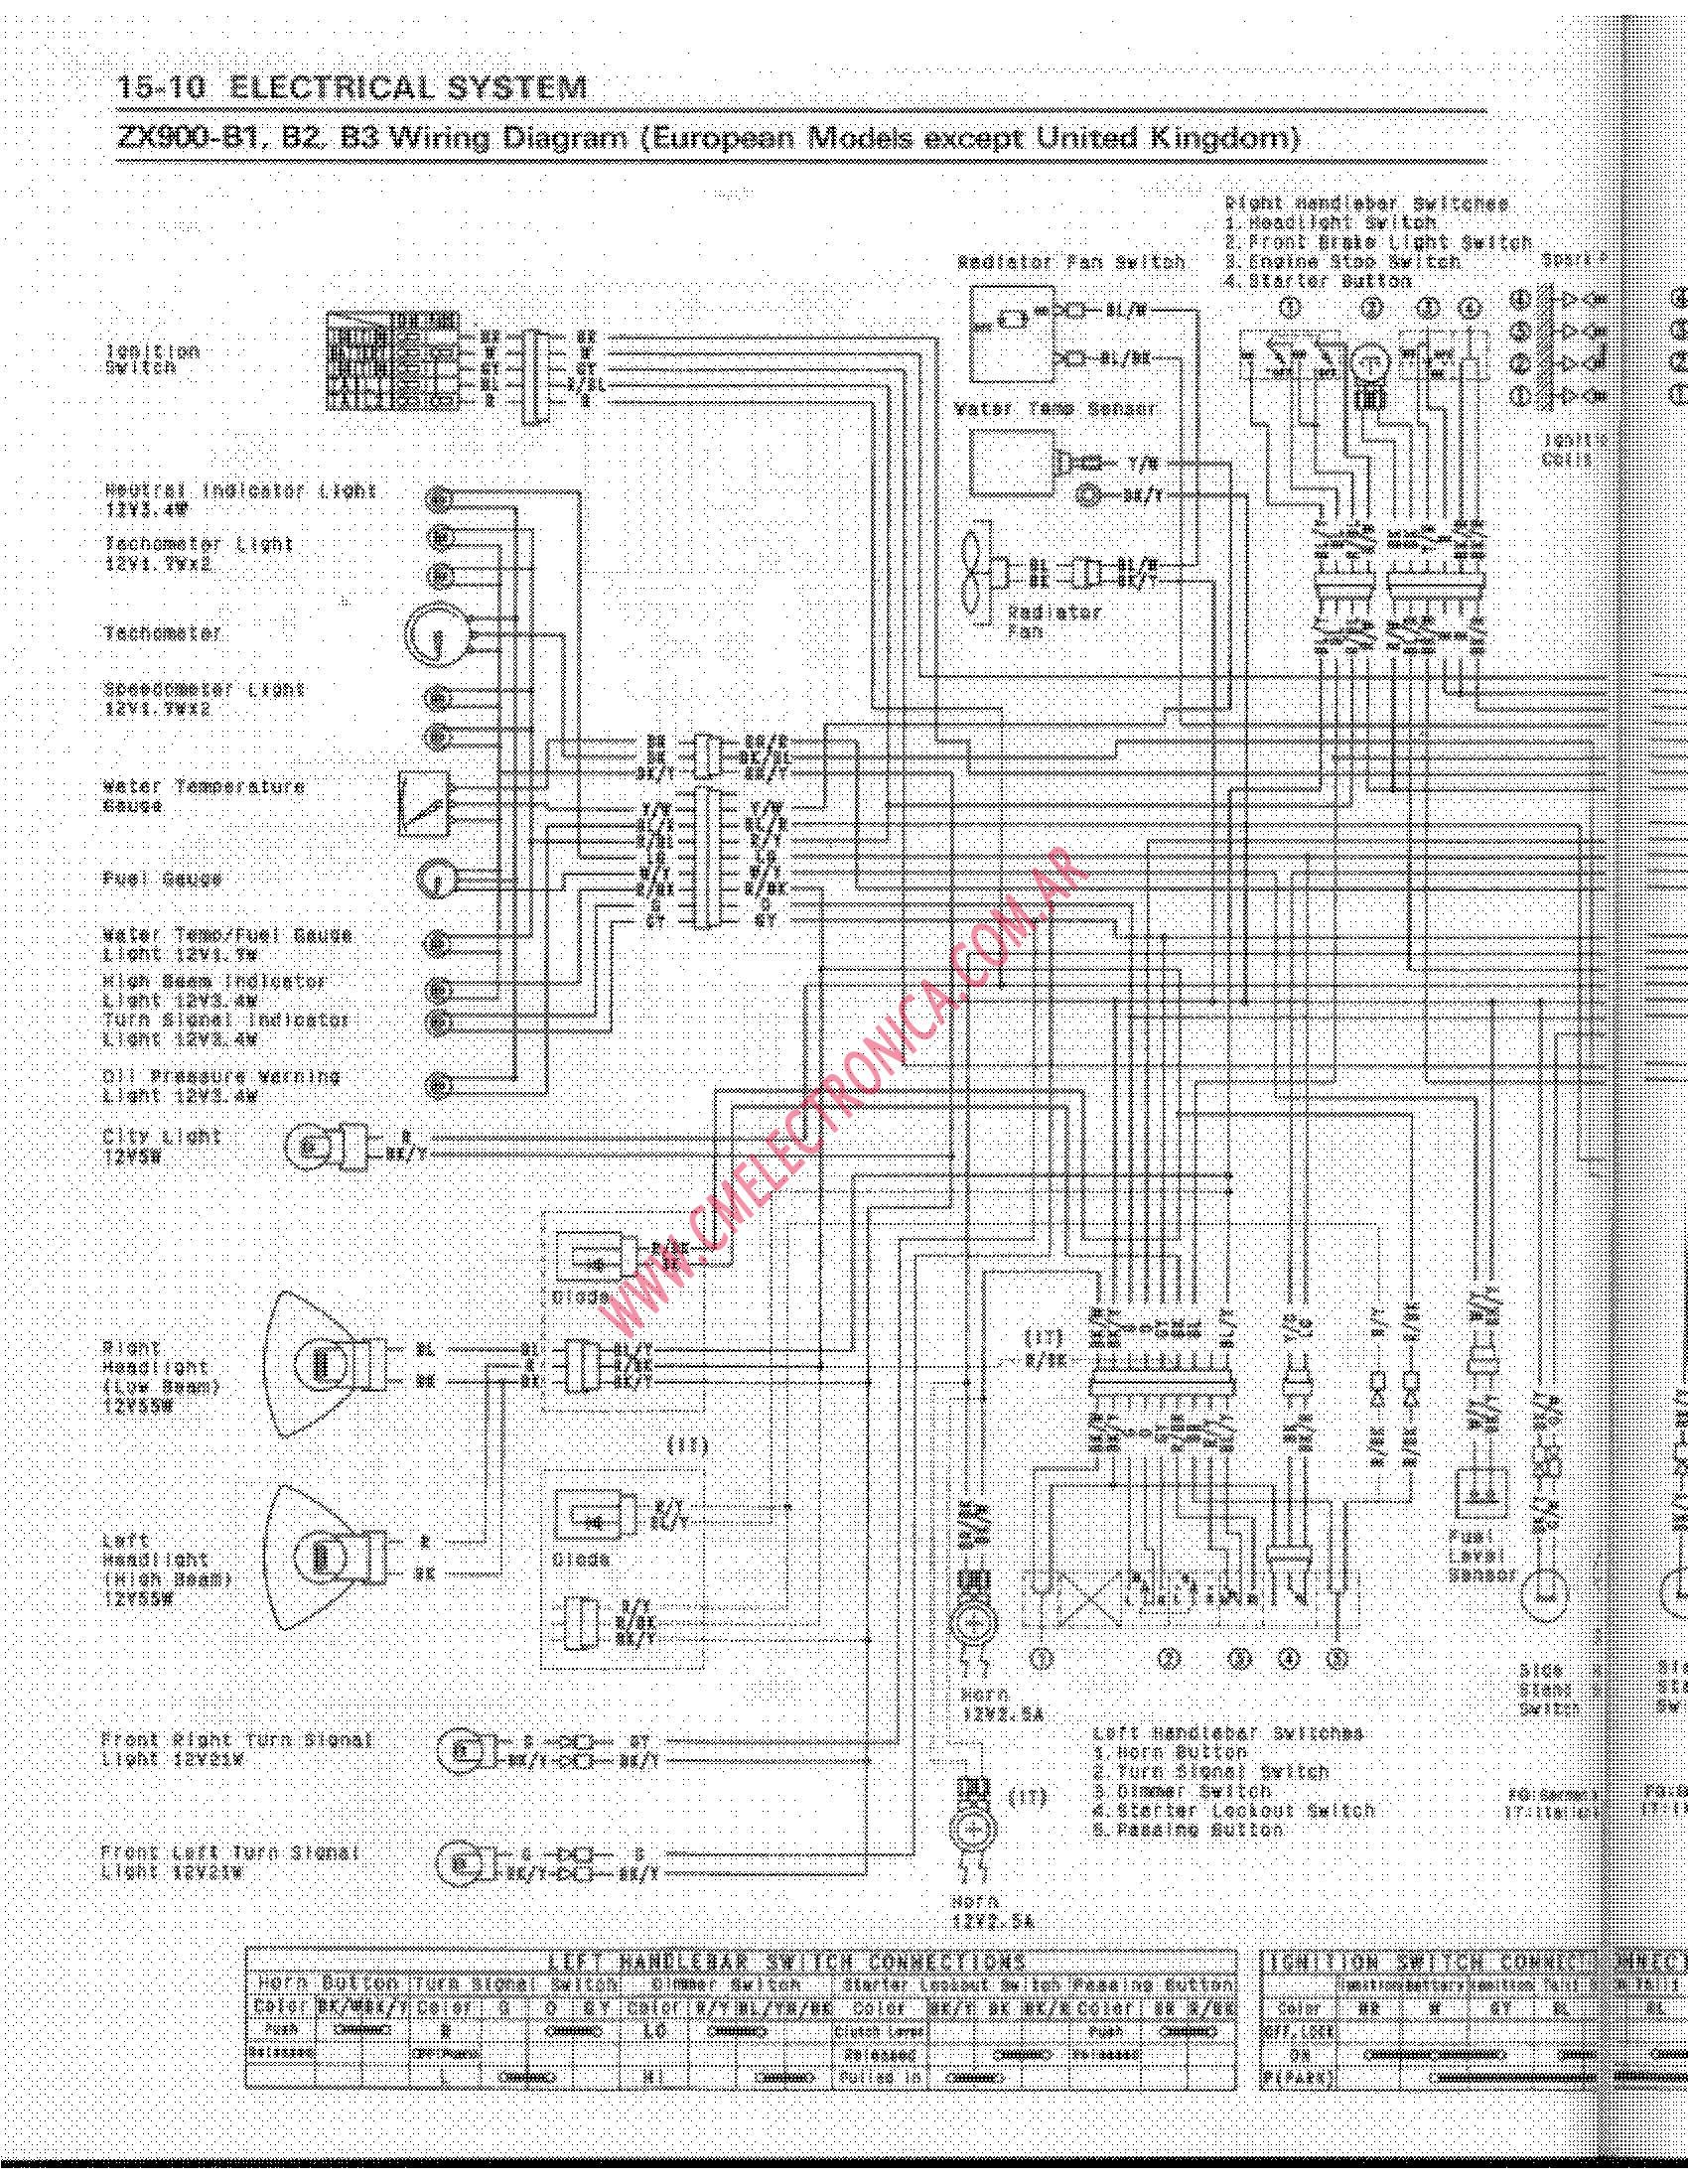 Kawasaki 610 Wiring Schematic Mule 600 Diagram Free Download Diagrams 400 Atv Photos For